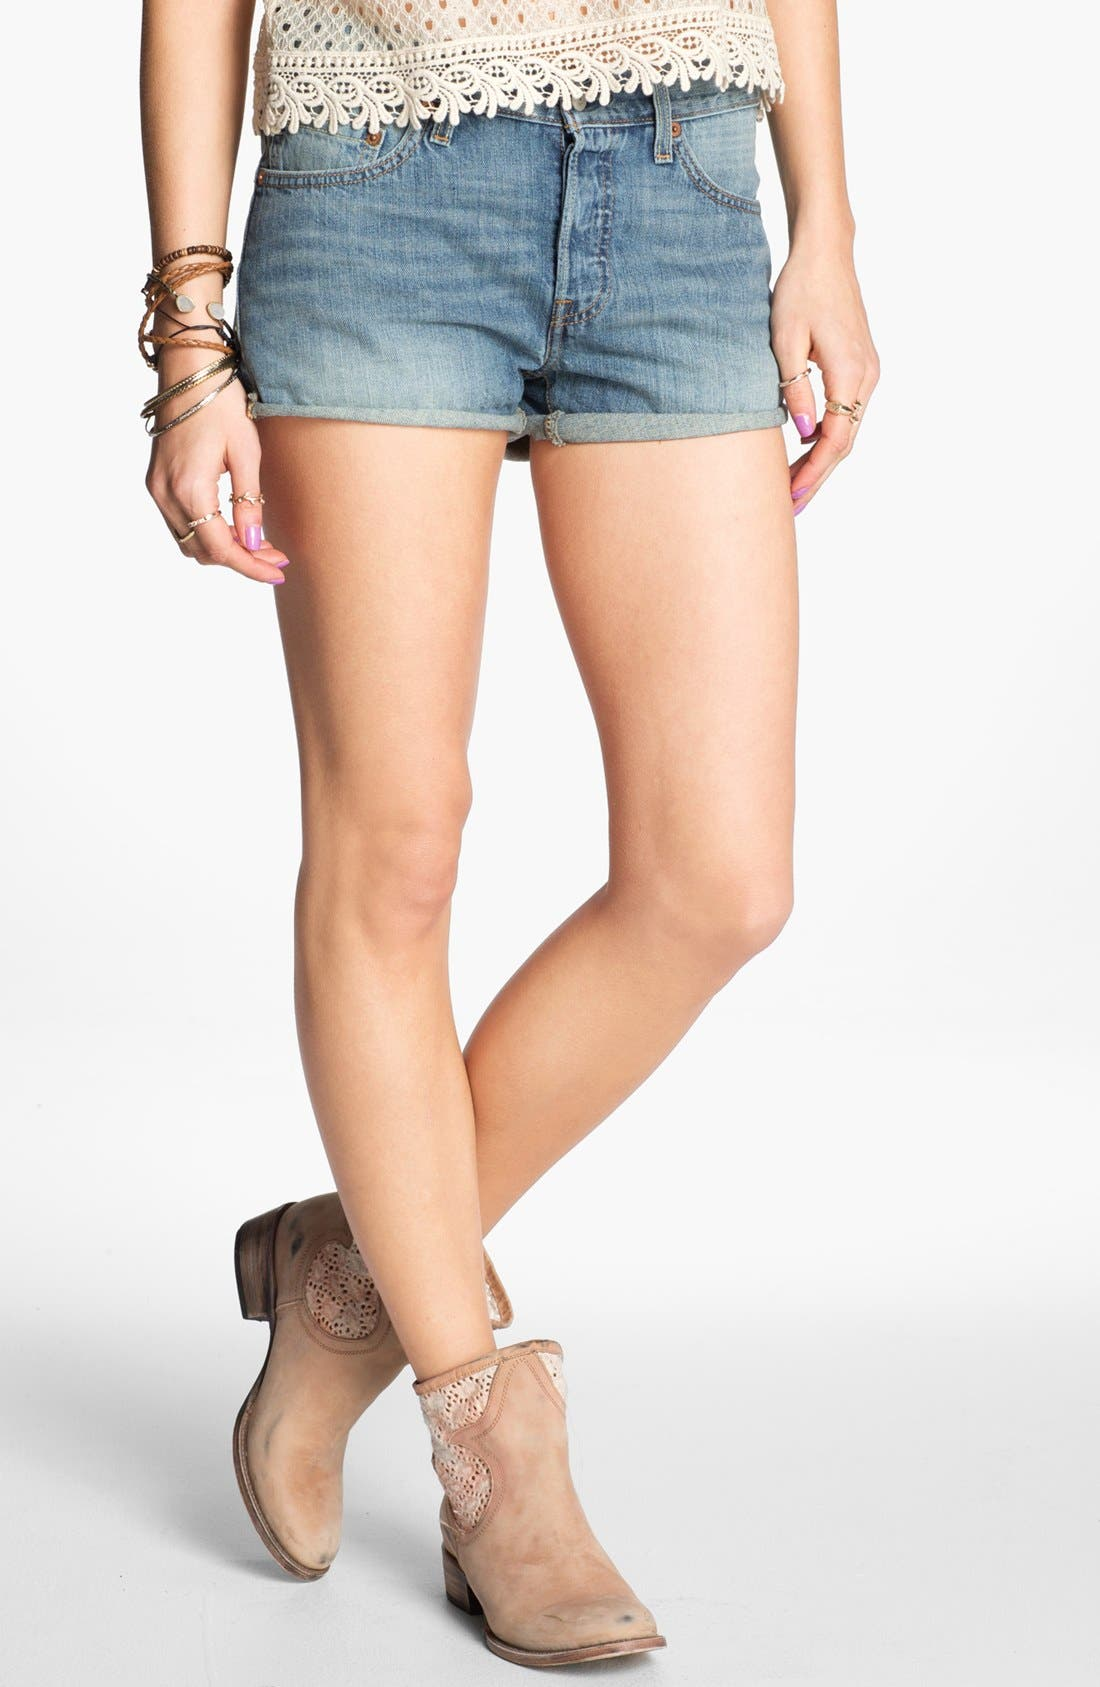 Alternate Image 1 Selected - Levi's® '501' High Waist Cuff Denim Shorts (Bright Idea)